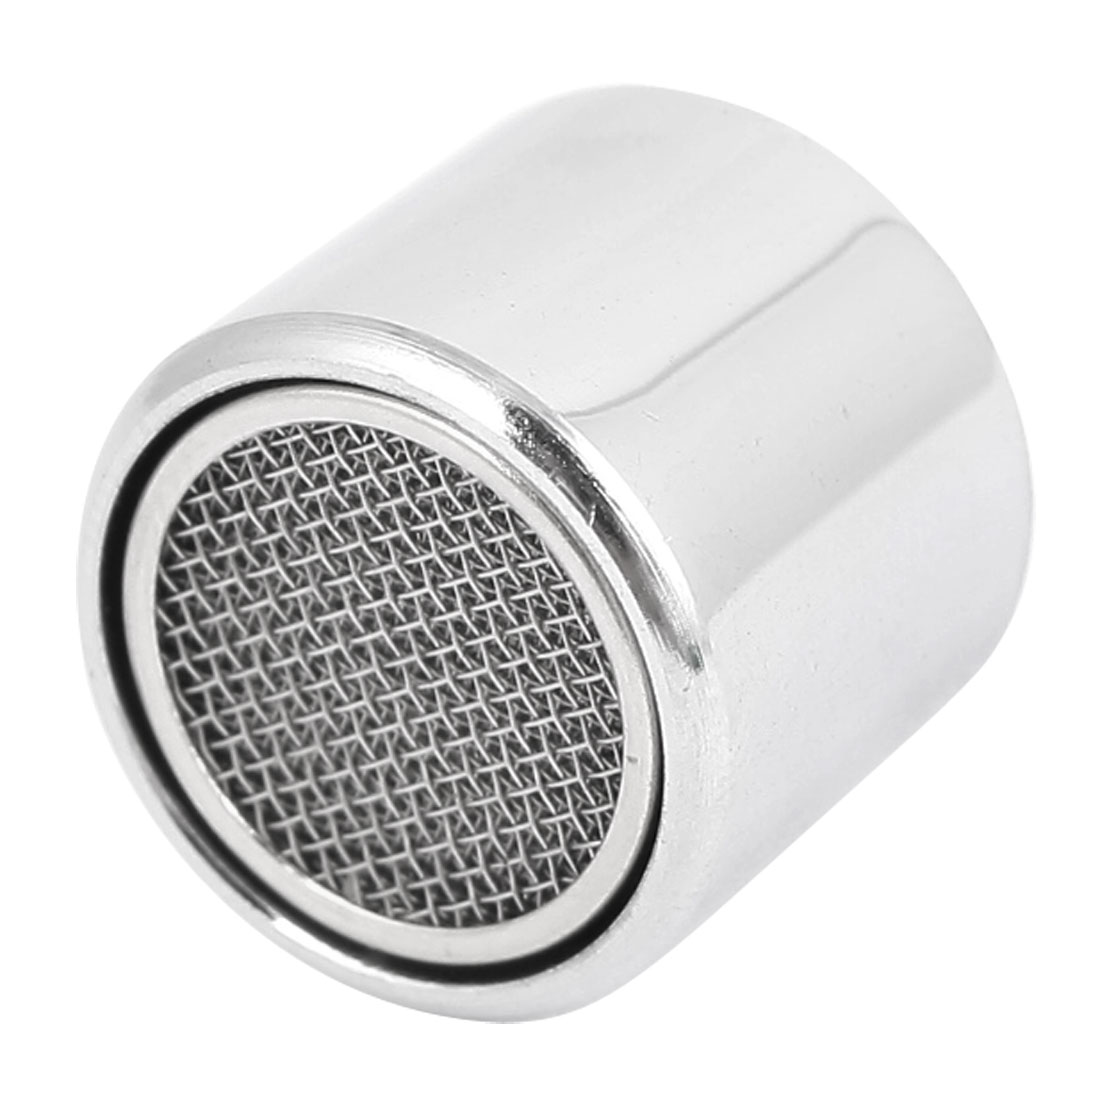 17mm Female Thread Silver Tone Water Saving Faucet Tap Filtering Net Spout Aerator Nozzle w Seal Gasket